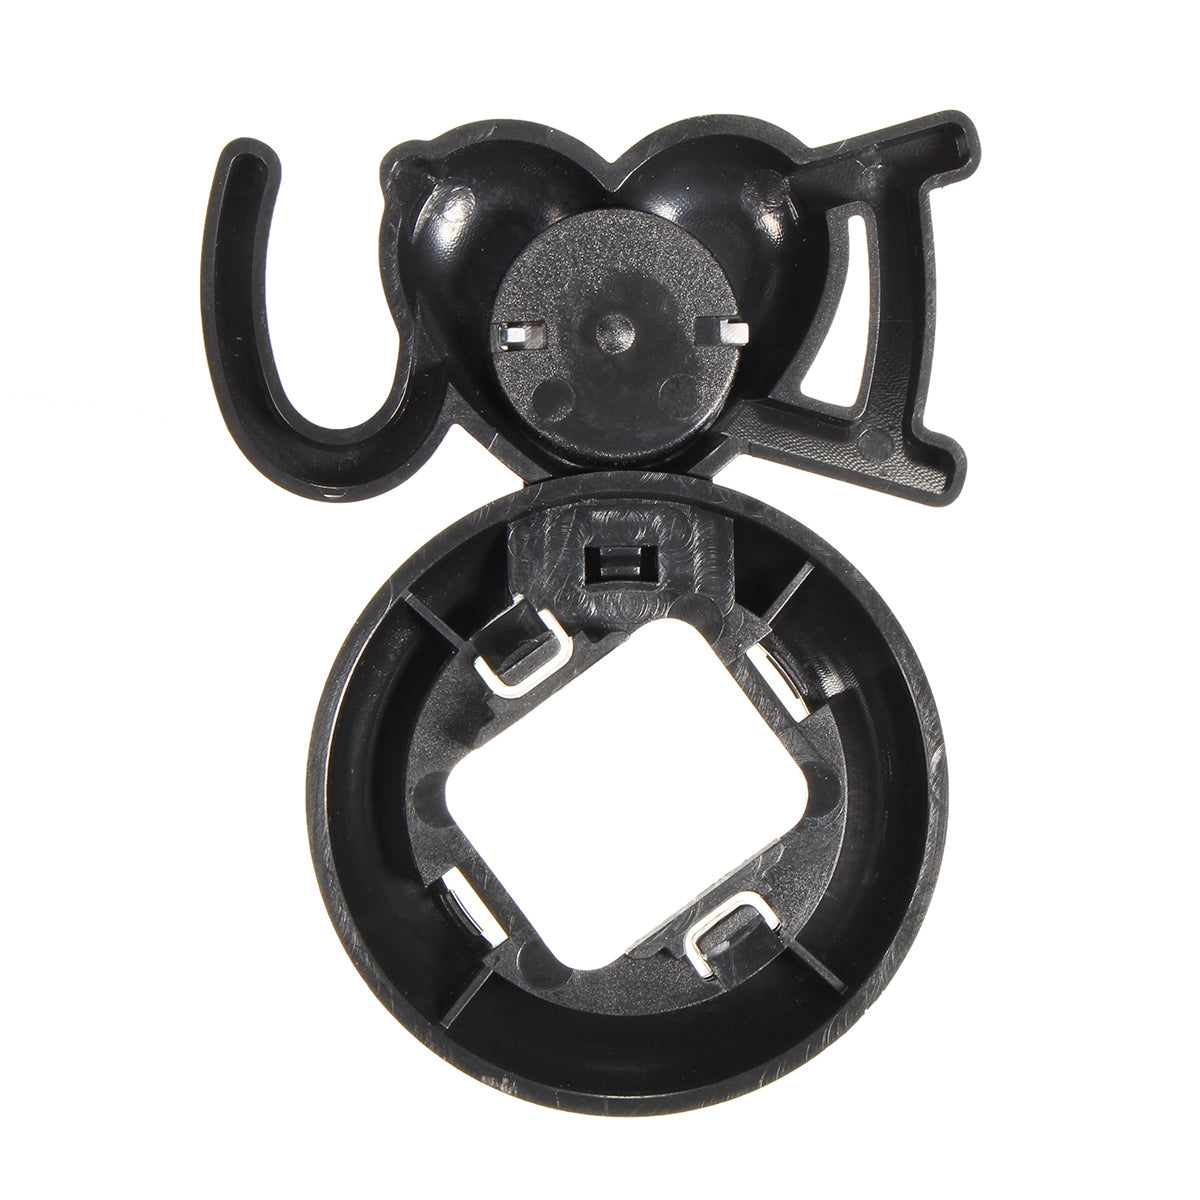 Close Up Lens Rotary Self Shoot Mirror for Fujifilm Instax Mini7s 8 Kitty Camera